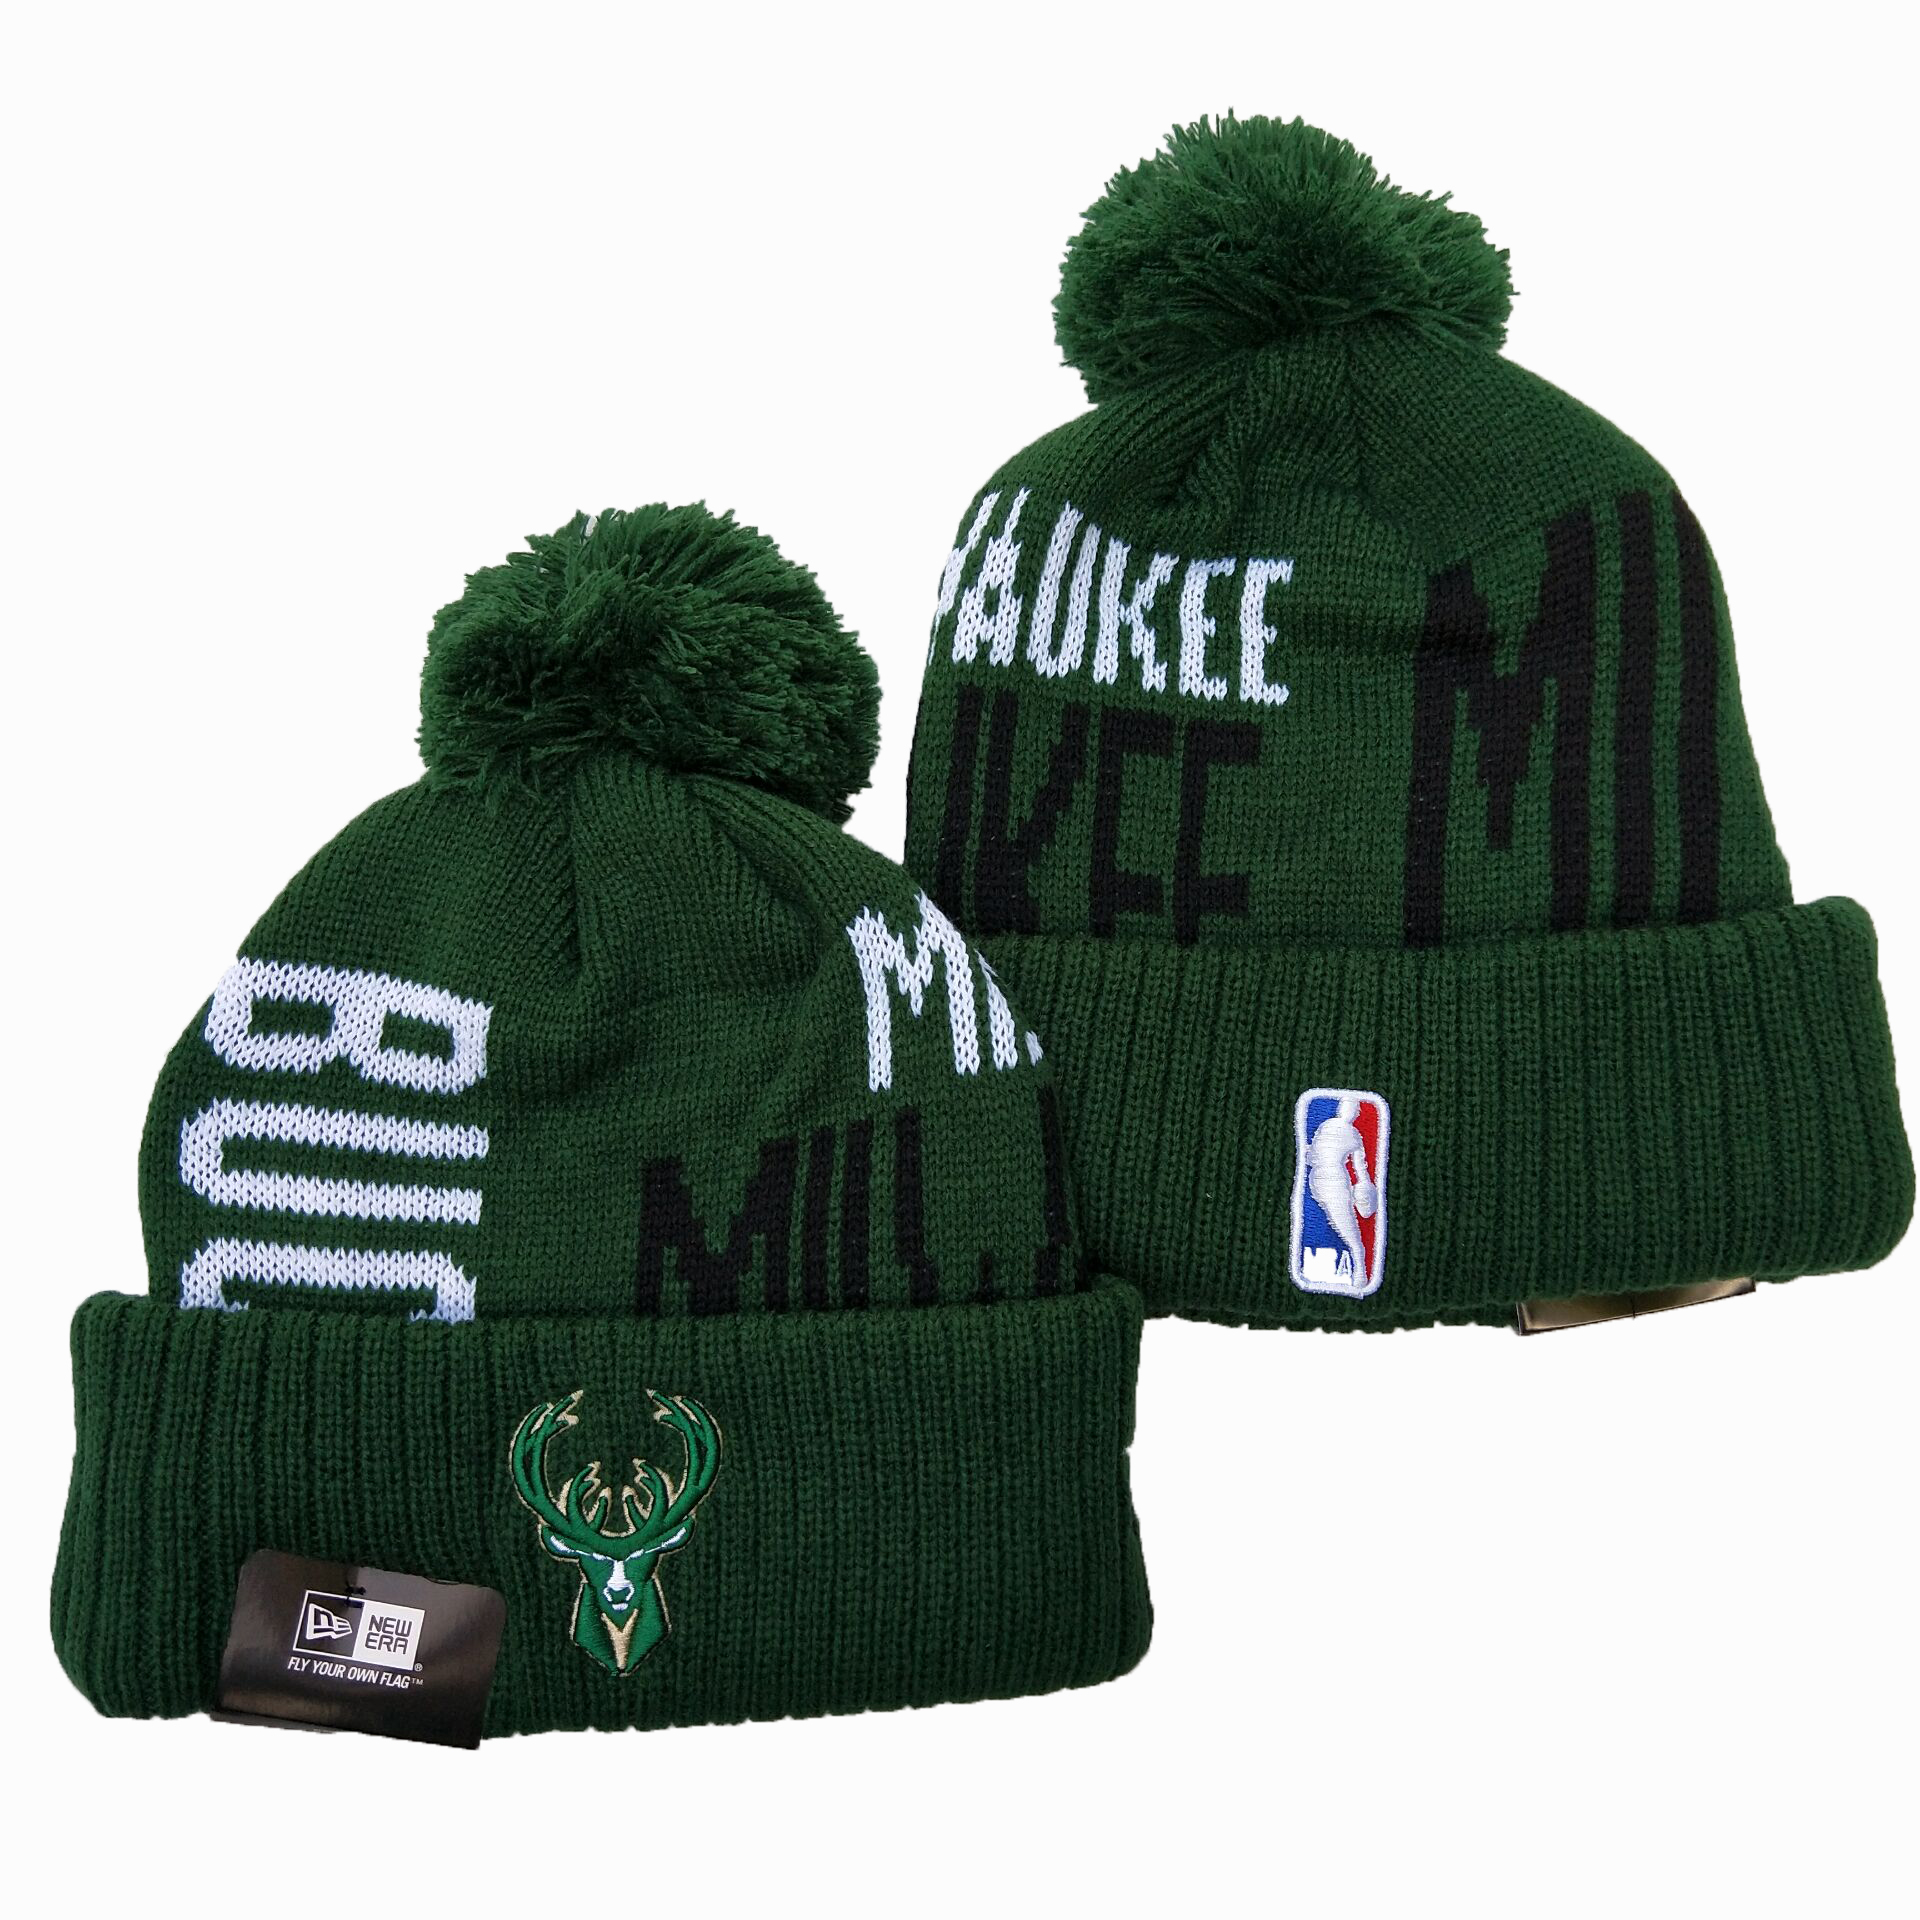 Bucks Team Logo Green Wordmark Cuffed Pom Knit Hat YD